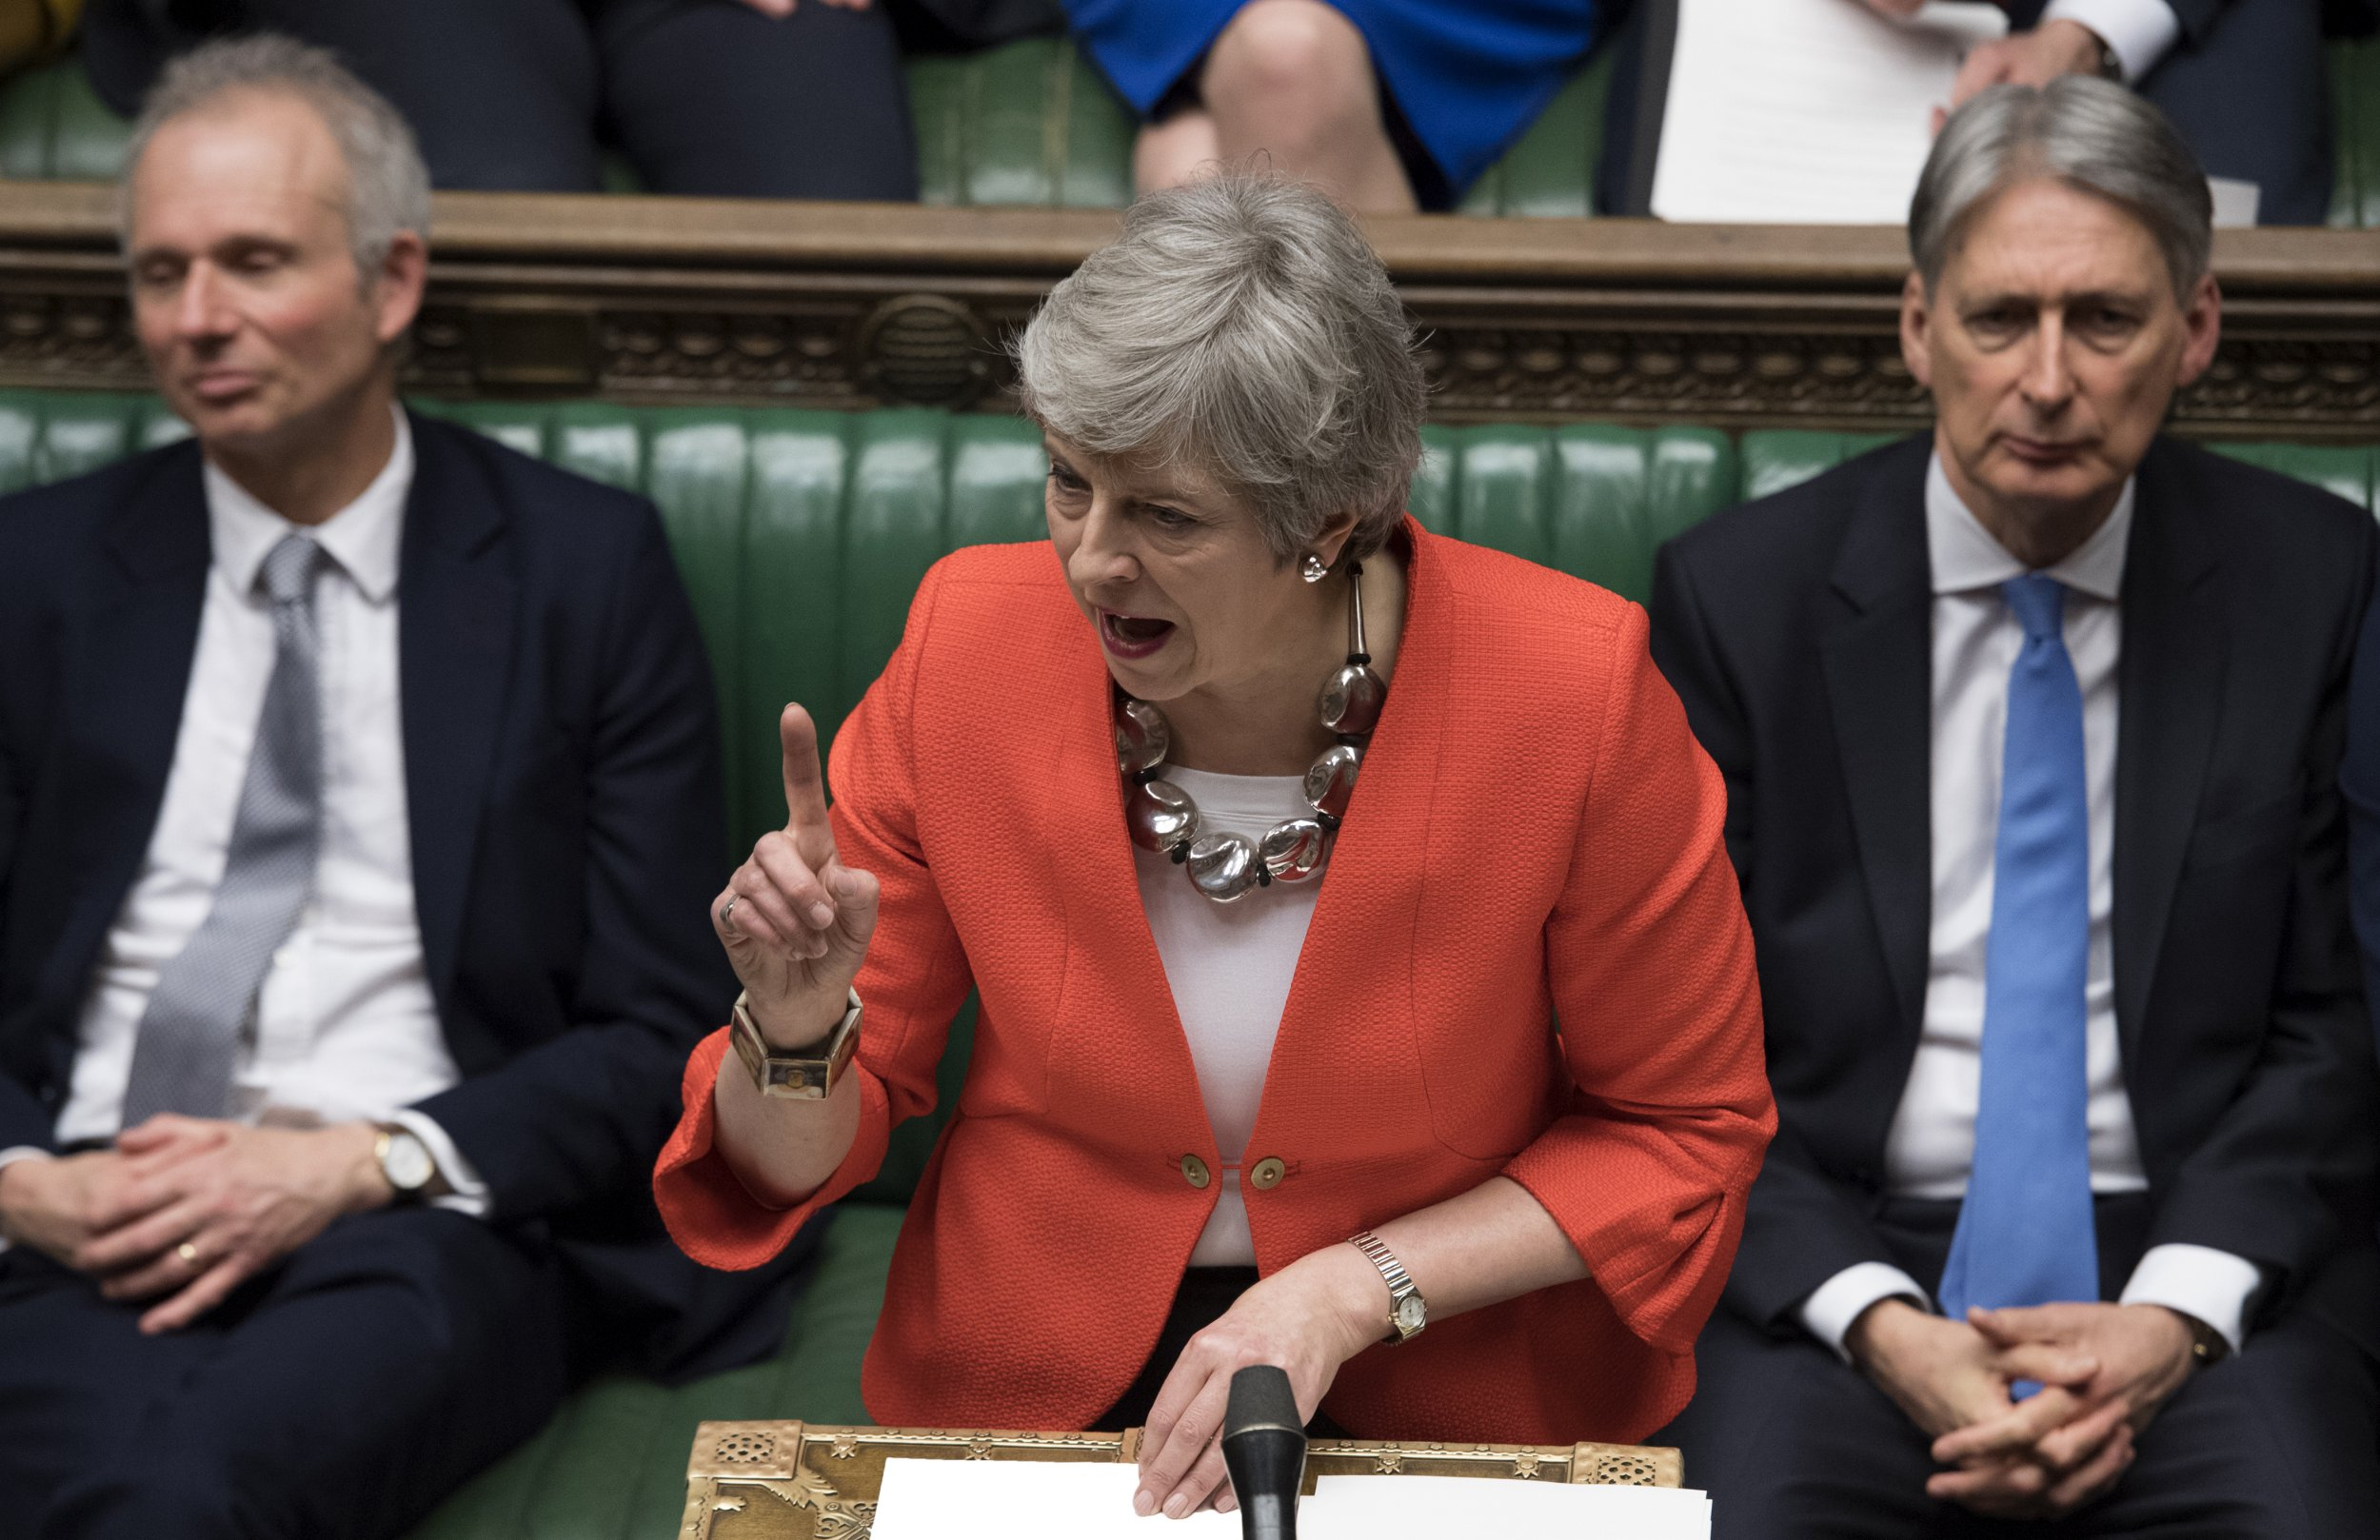 What is a free vote and how could it affect the no deal Brexit vote?